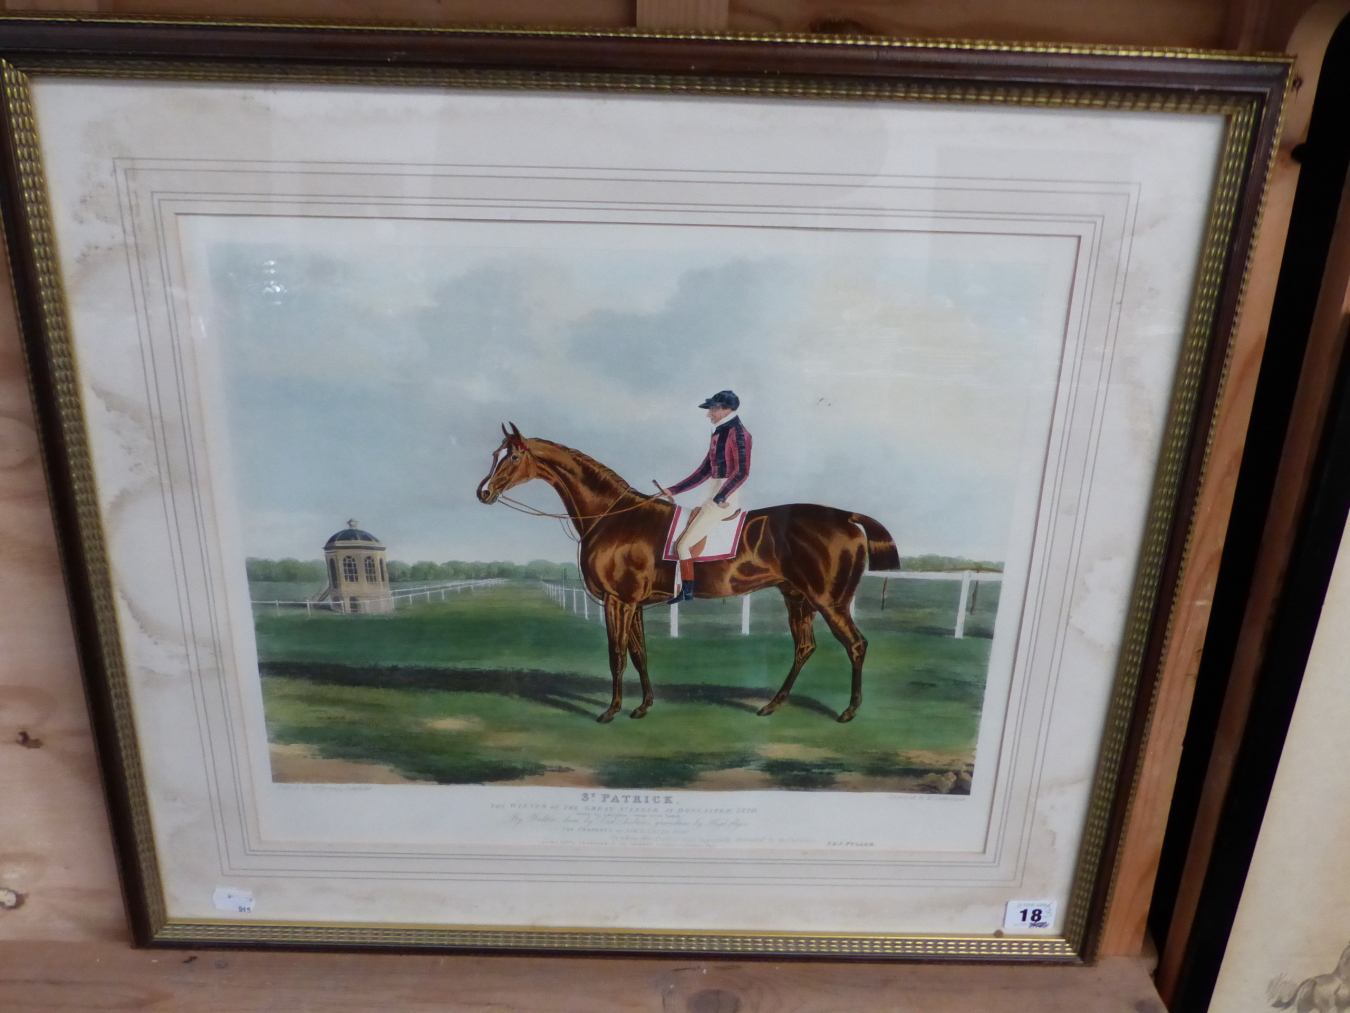 AFTER J.F. HERRING. A HAND COLOURED PRINT OF THE RACE HORSE ST. PATRICK. 37 x 44cms TOGETHER WITH - Image 2 of 4